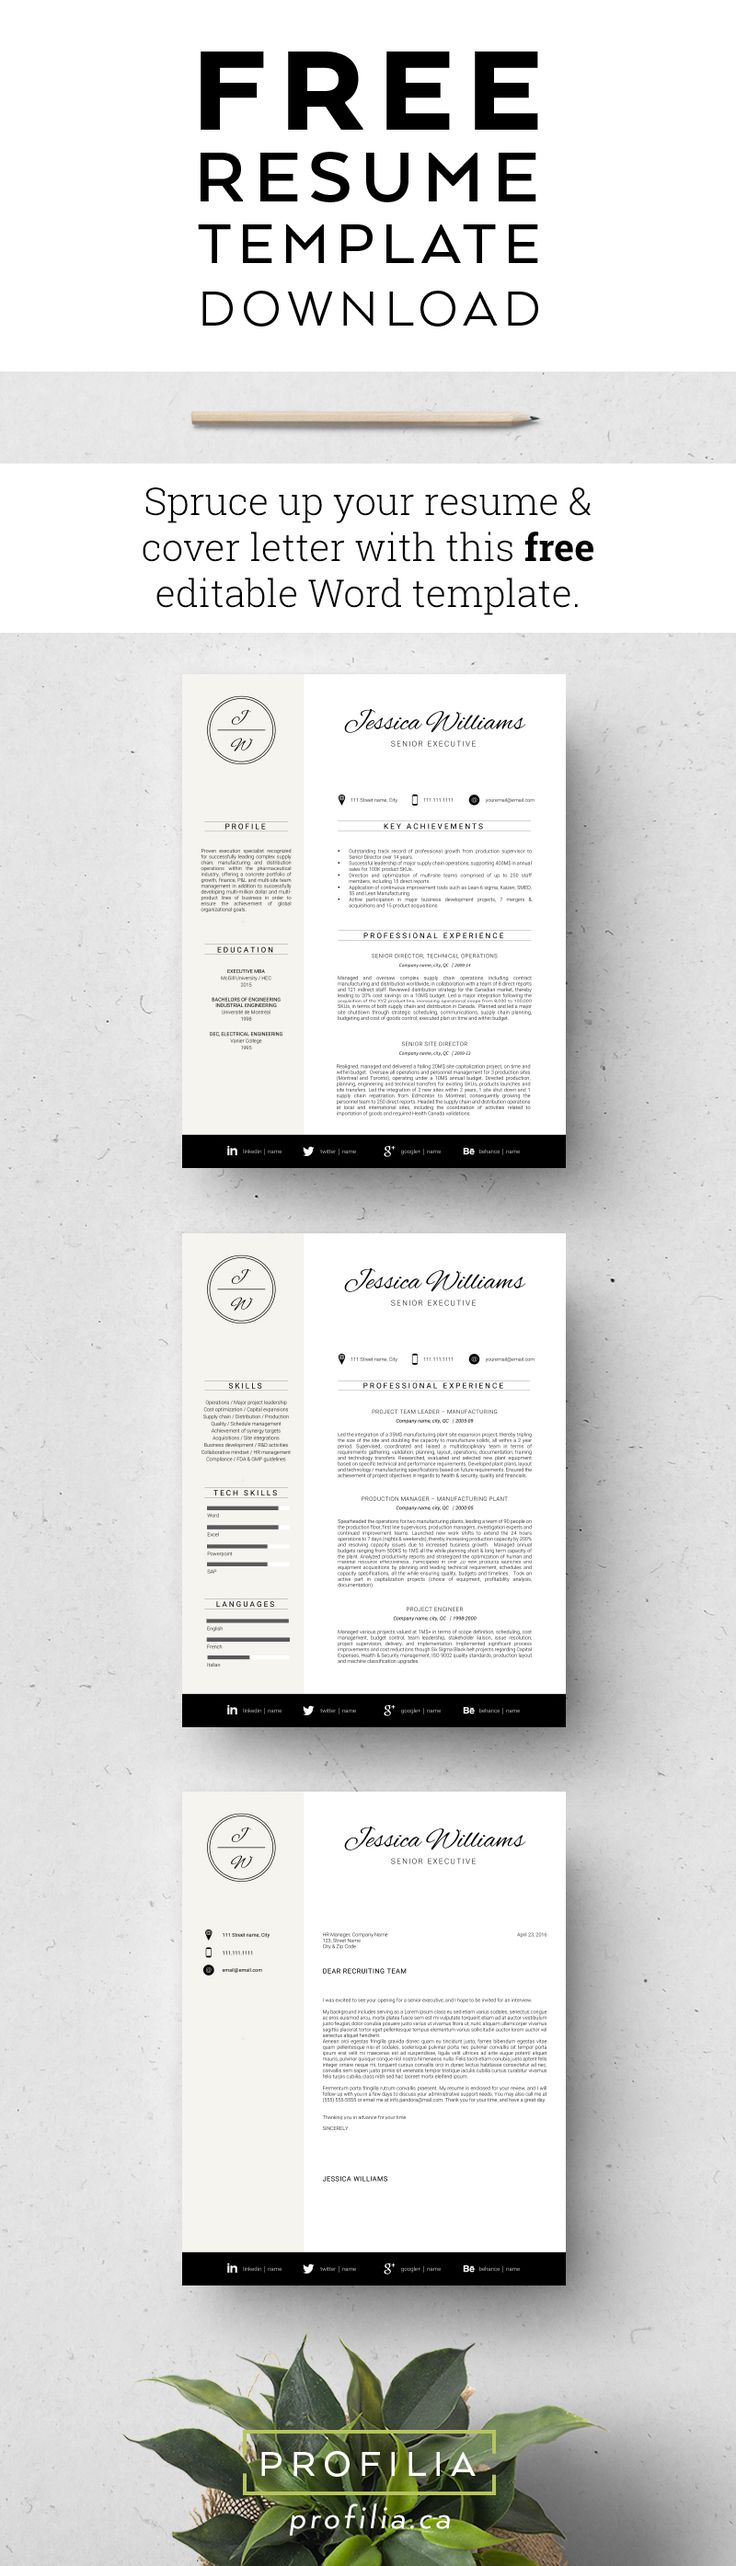 free resume template refresh your job search with this free resume cover - Example Of Resume Cover Letter For Job